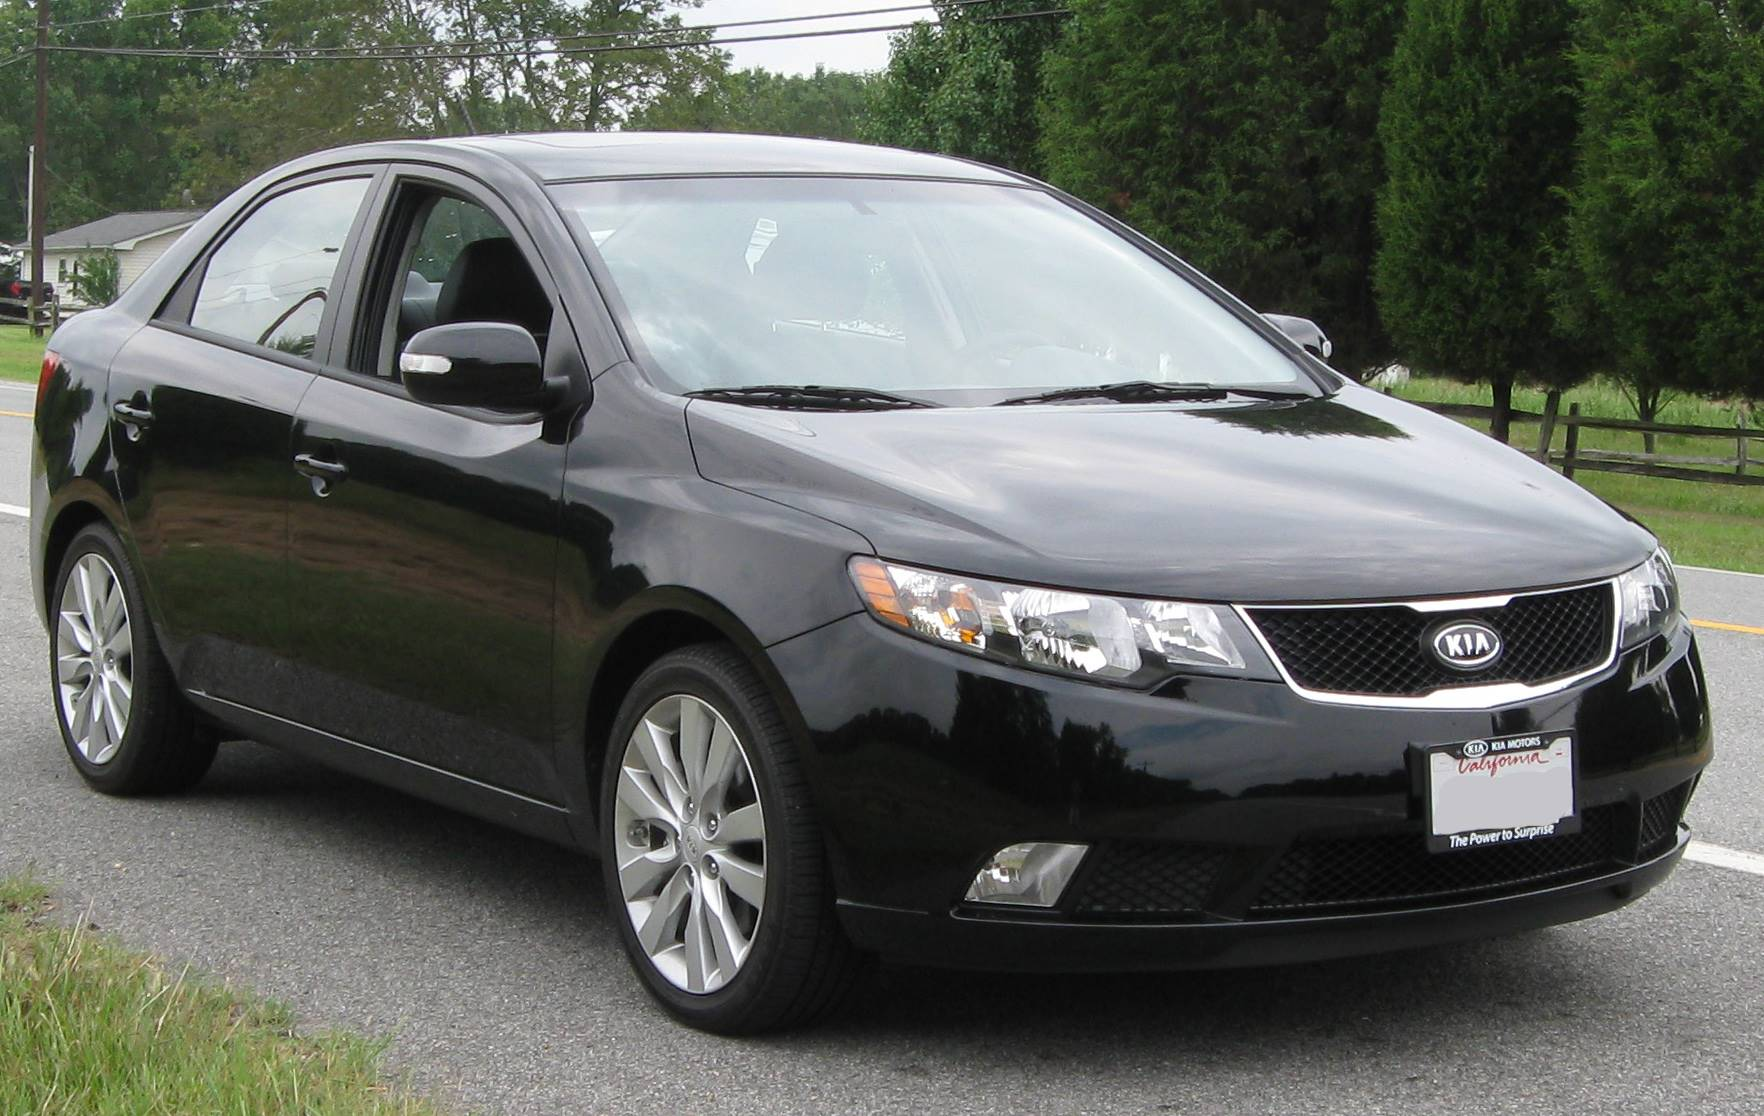 Superb ... 2010 Kia Forte. Starting From $3,971 25 City / 34 Highway Mpg